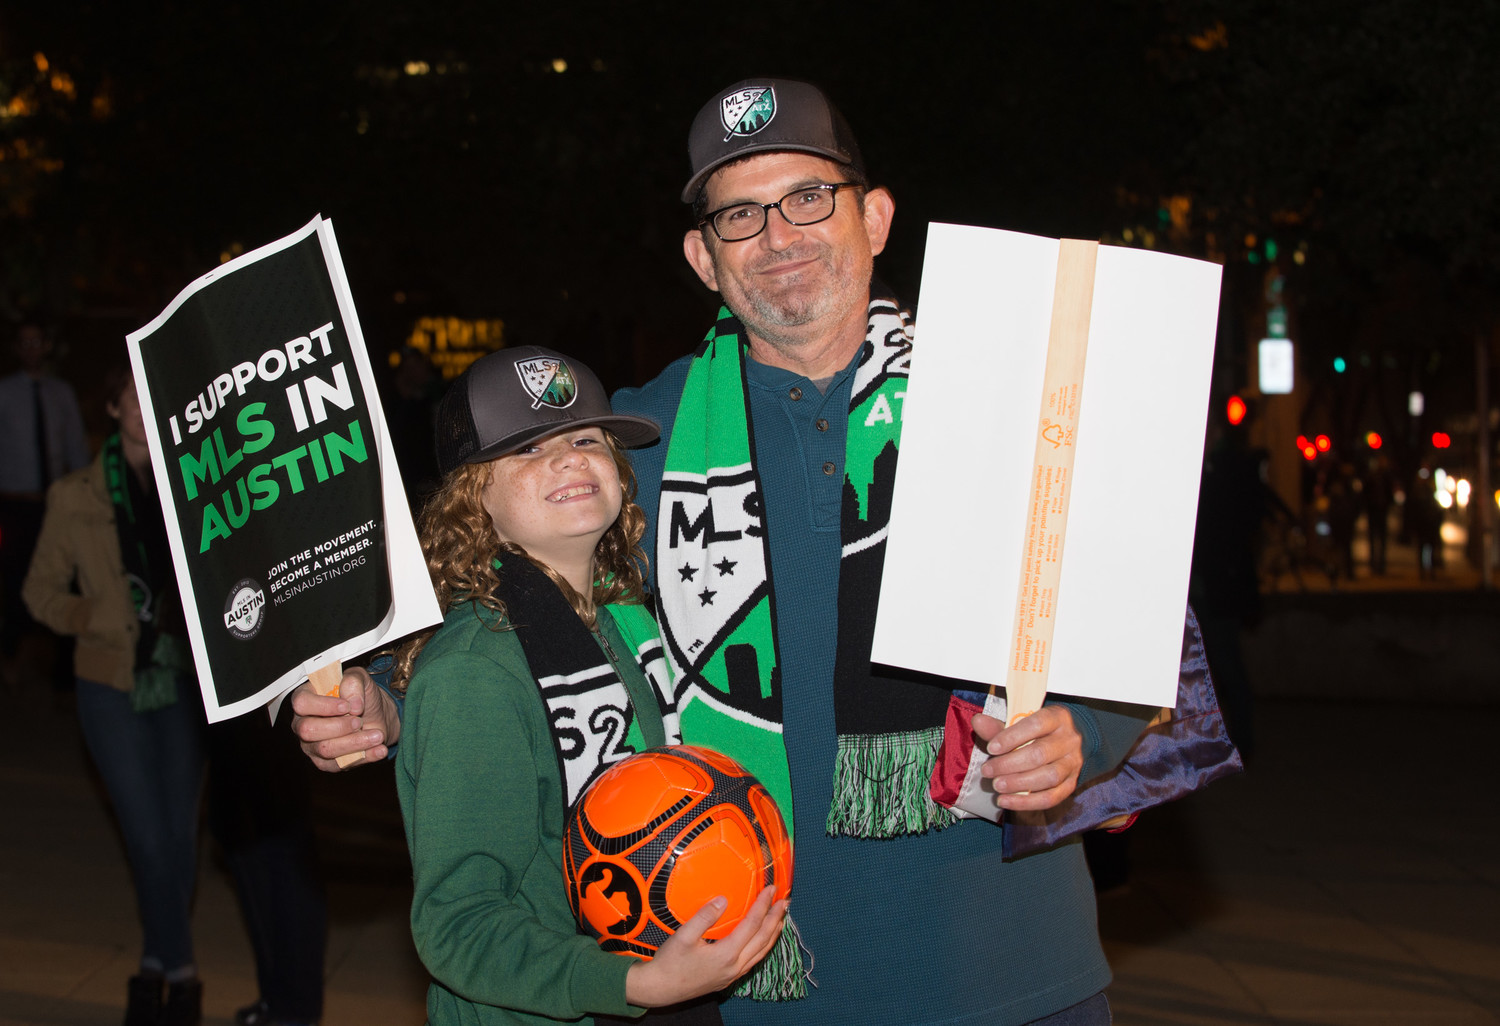 Supporters of MLS2ATX hold a rally outside City Hall following the City of Austin's unanimous resolution supporting the plan to bring a Major League Soccer franchise to Austin from Columbus, Ohio, on November 9, 2017.